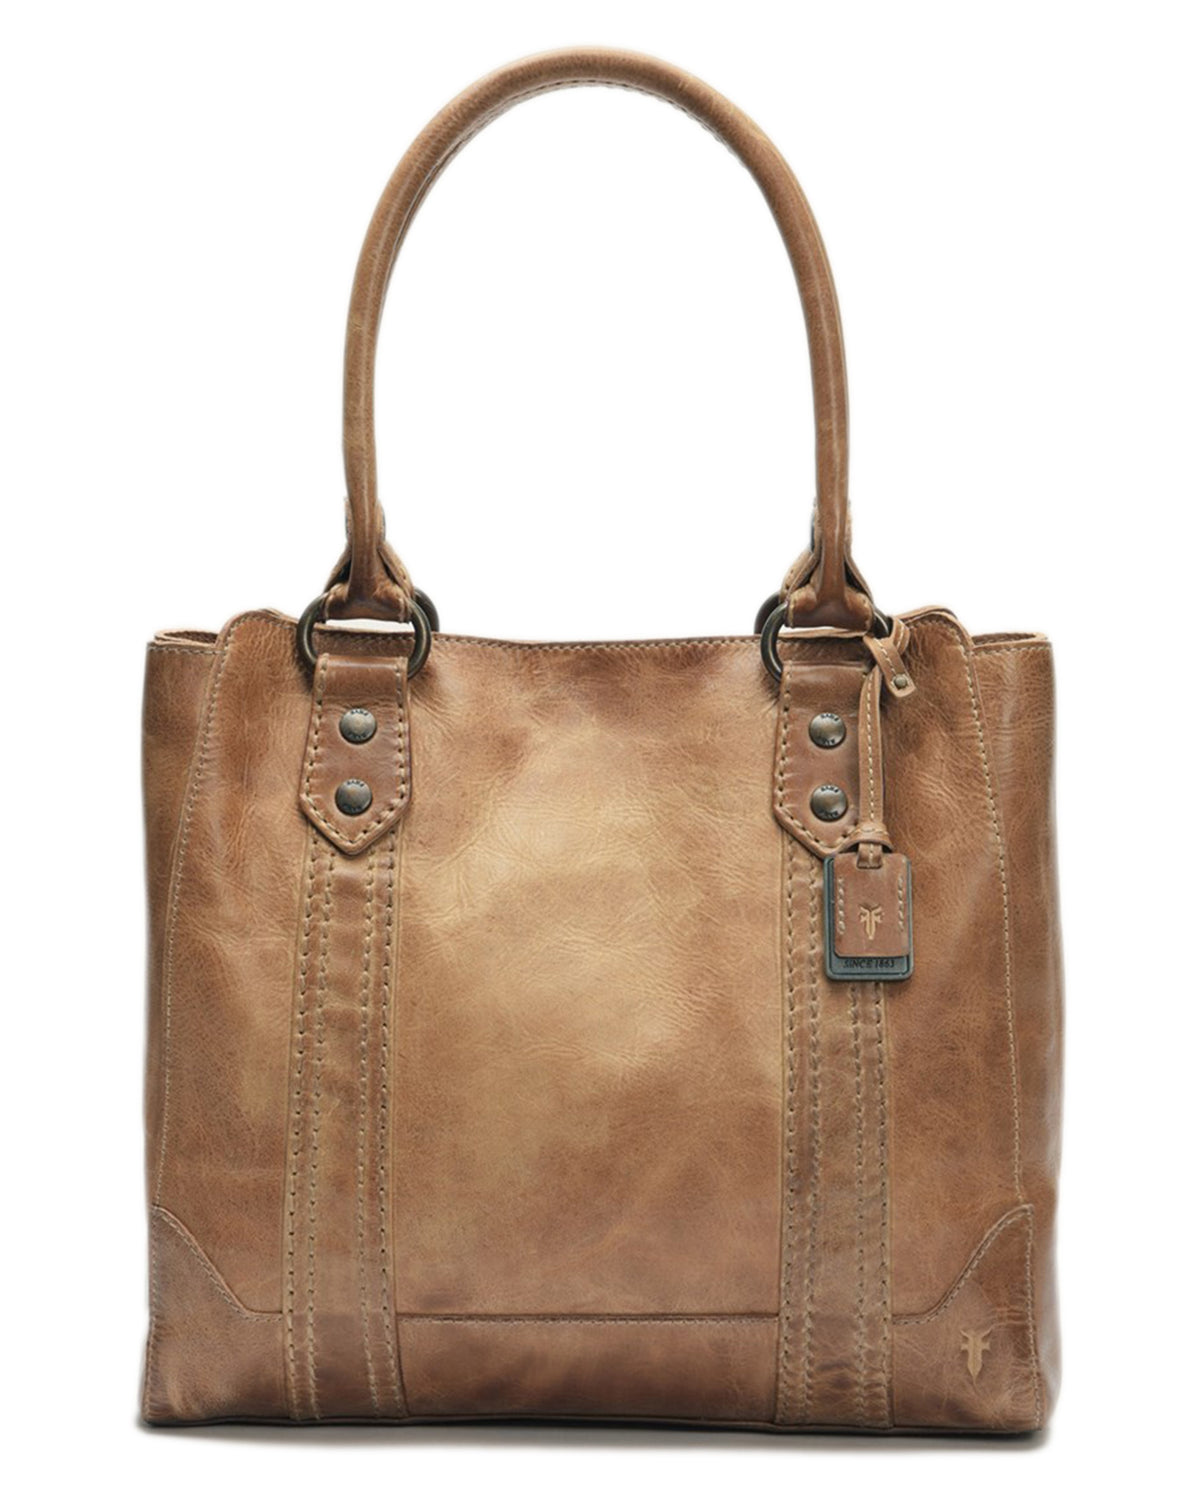 Frye Accessories Beige / O/S Melissa Tote